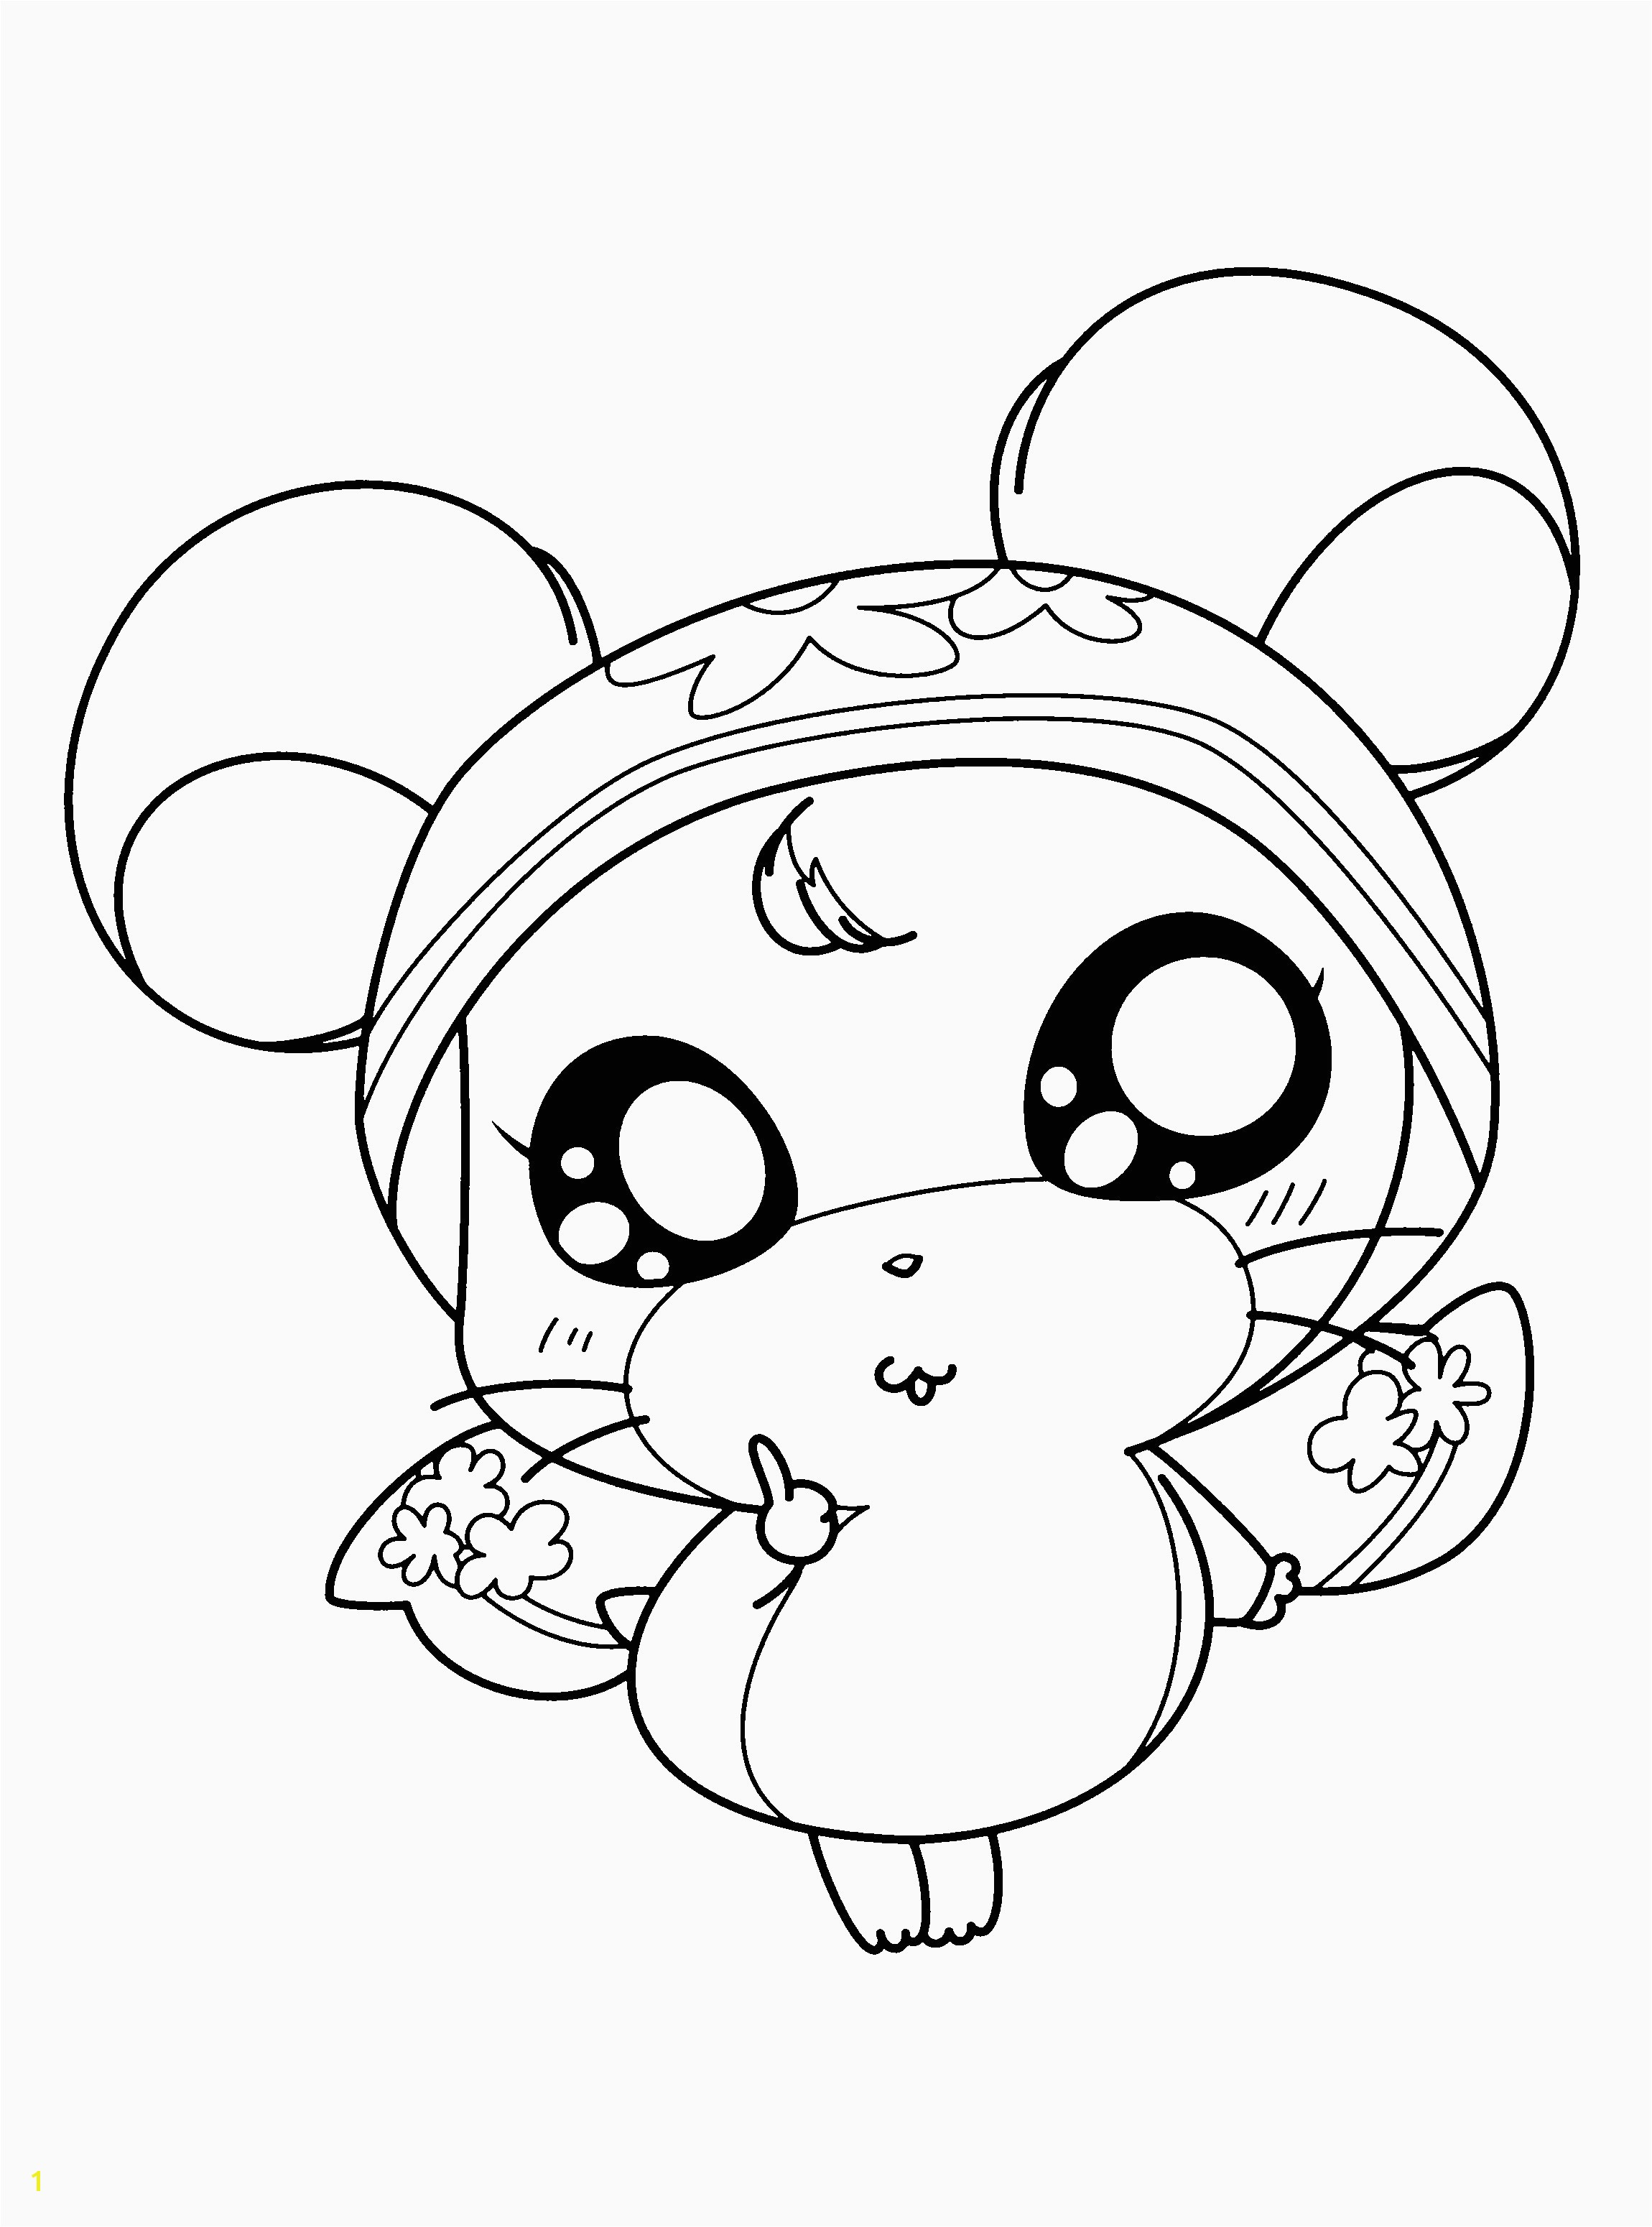 Angry Birds Coloring Pages for Learning Colors Coloring Pages for Kids Birds Coloring Pages